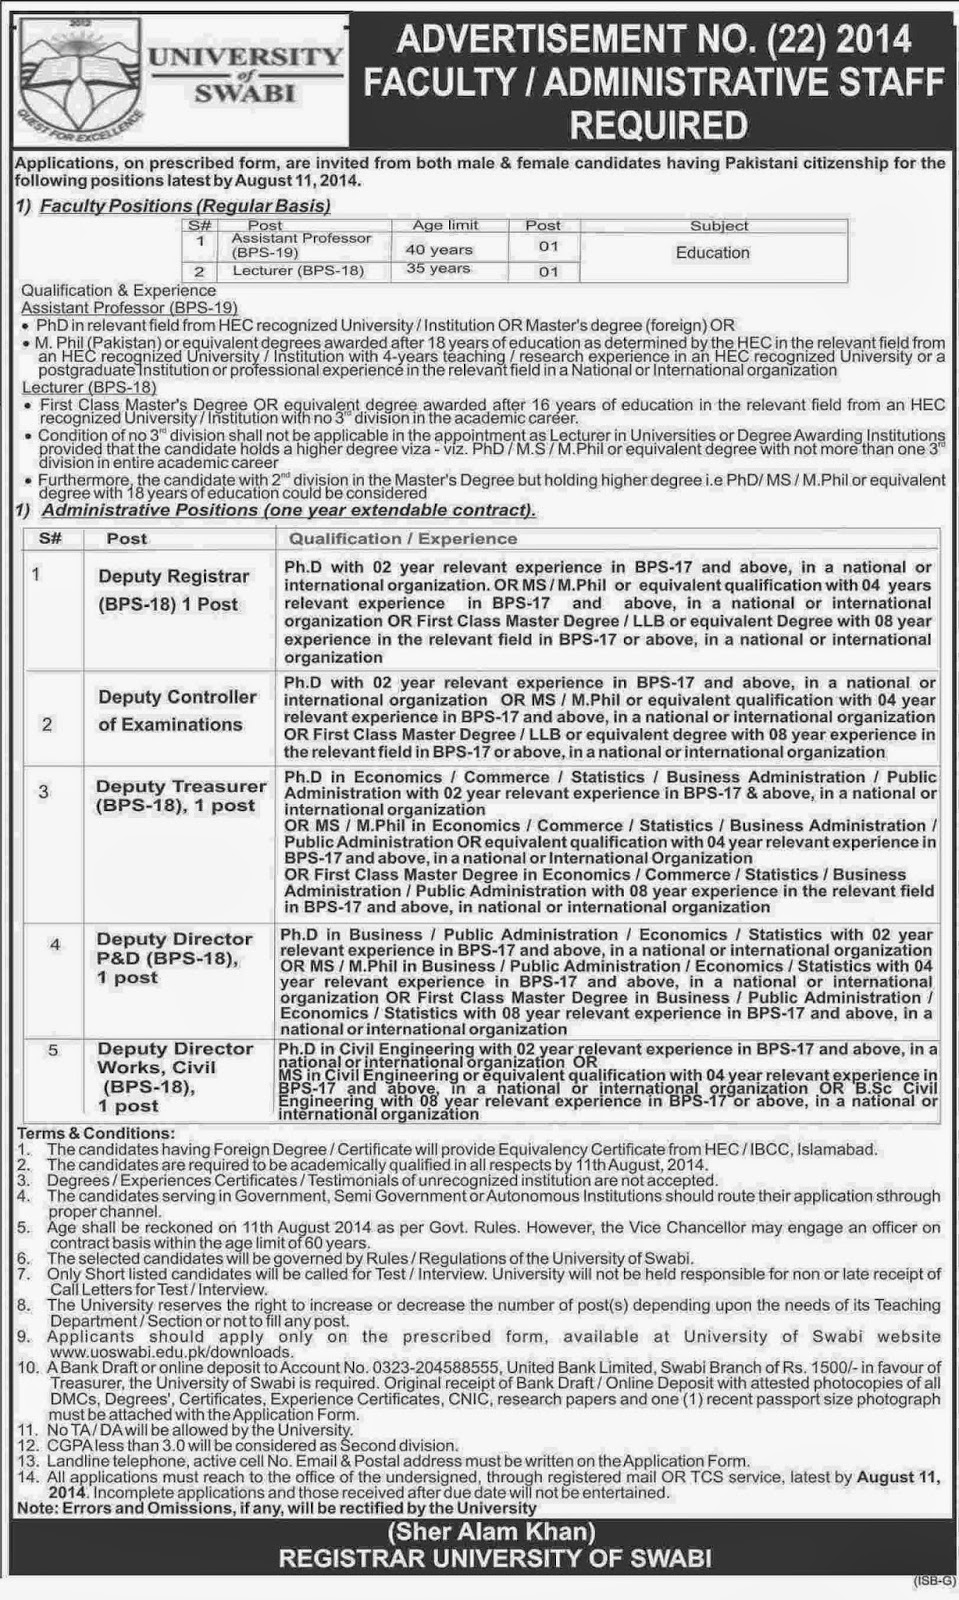 Assistant Professor, Lecturer and Deputy Director Jobs in University of Swabi, KPK